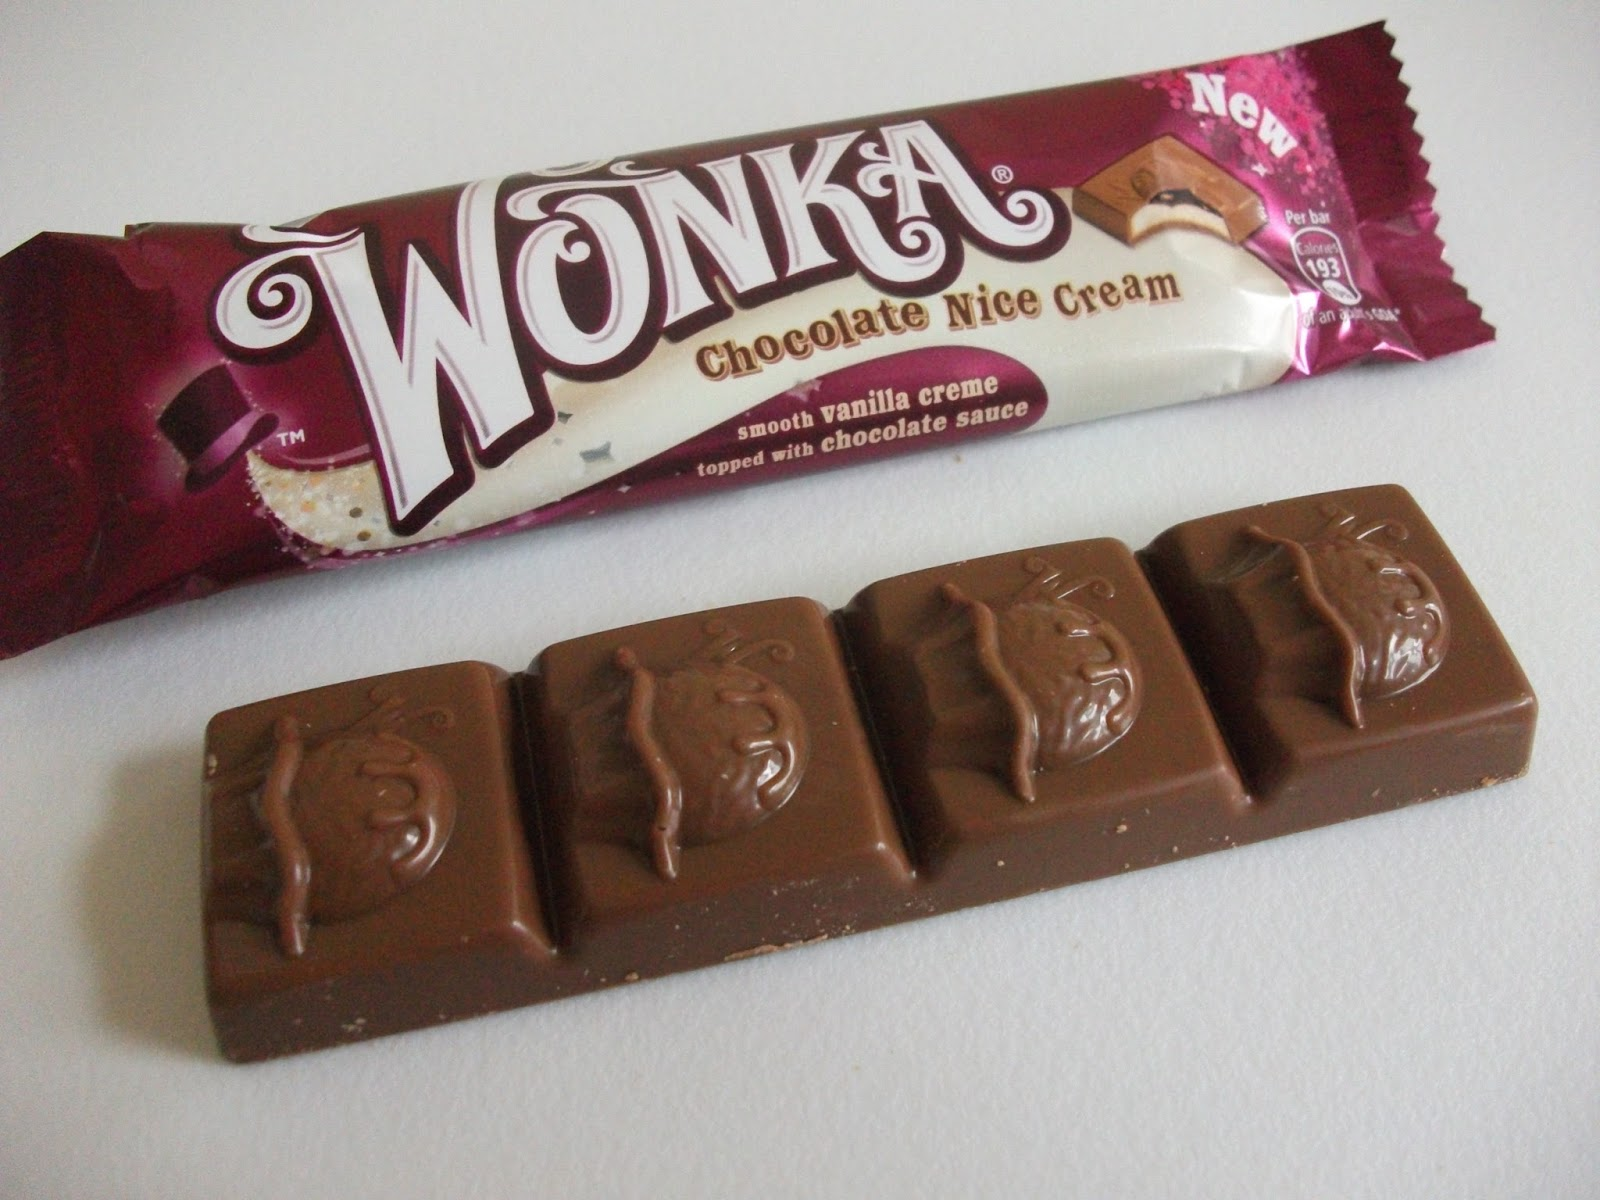 Nestlé Wonka Chocolate Nice Cream Bar Review